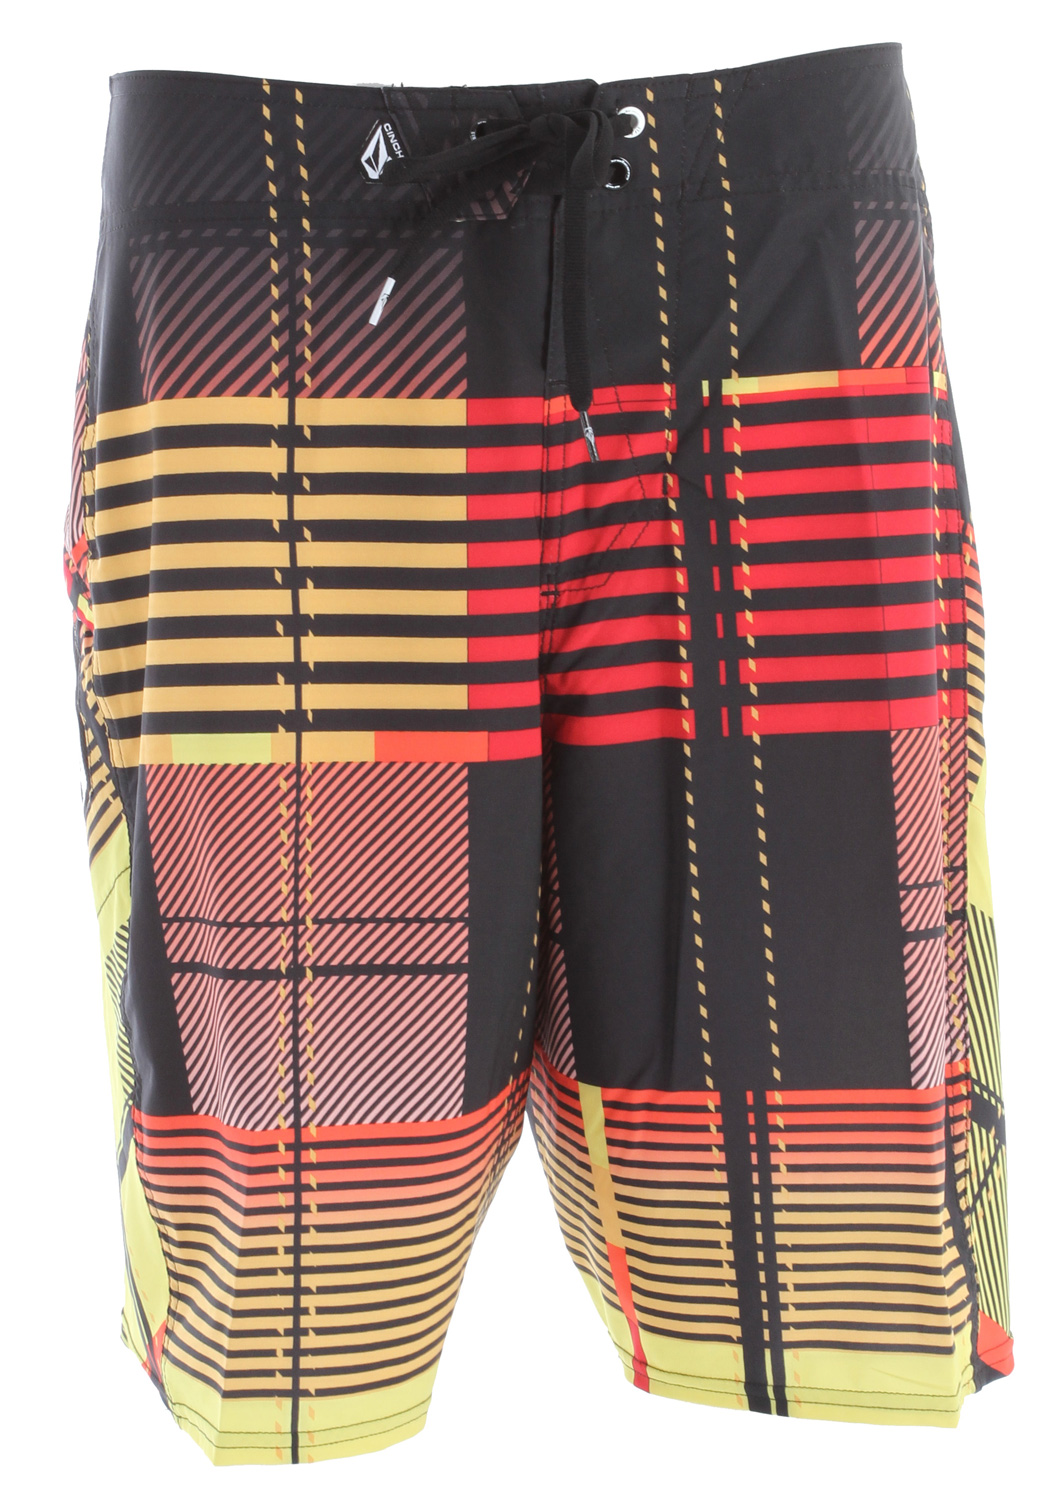 "Surf Key Features of the Volcom Gunshot Boardshorts: 21"" outseam Volcom 4-way stretch with water repellent treatment Stone mesh side panels, no inseam Welt zip pocket stretch hem Cinch fly technology 87% polyester/13% elastane 4-way-stretch with DWR - $40.95"